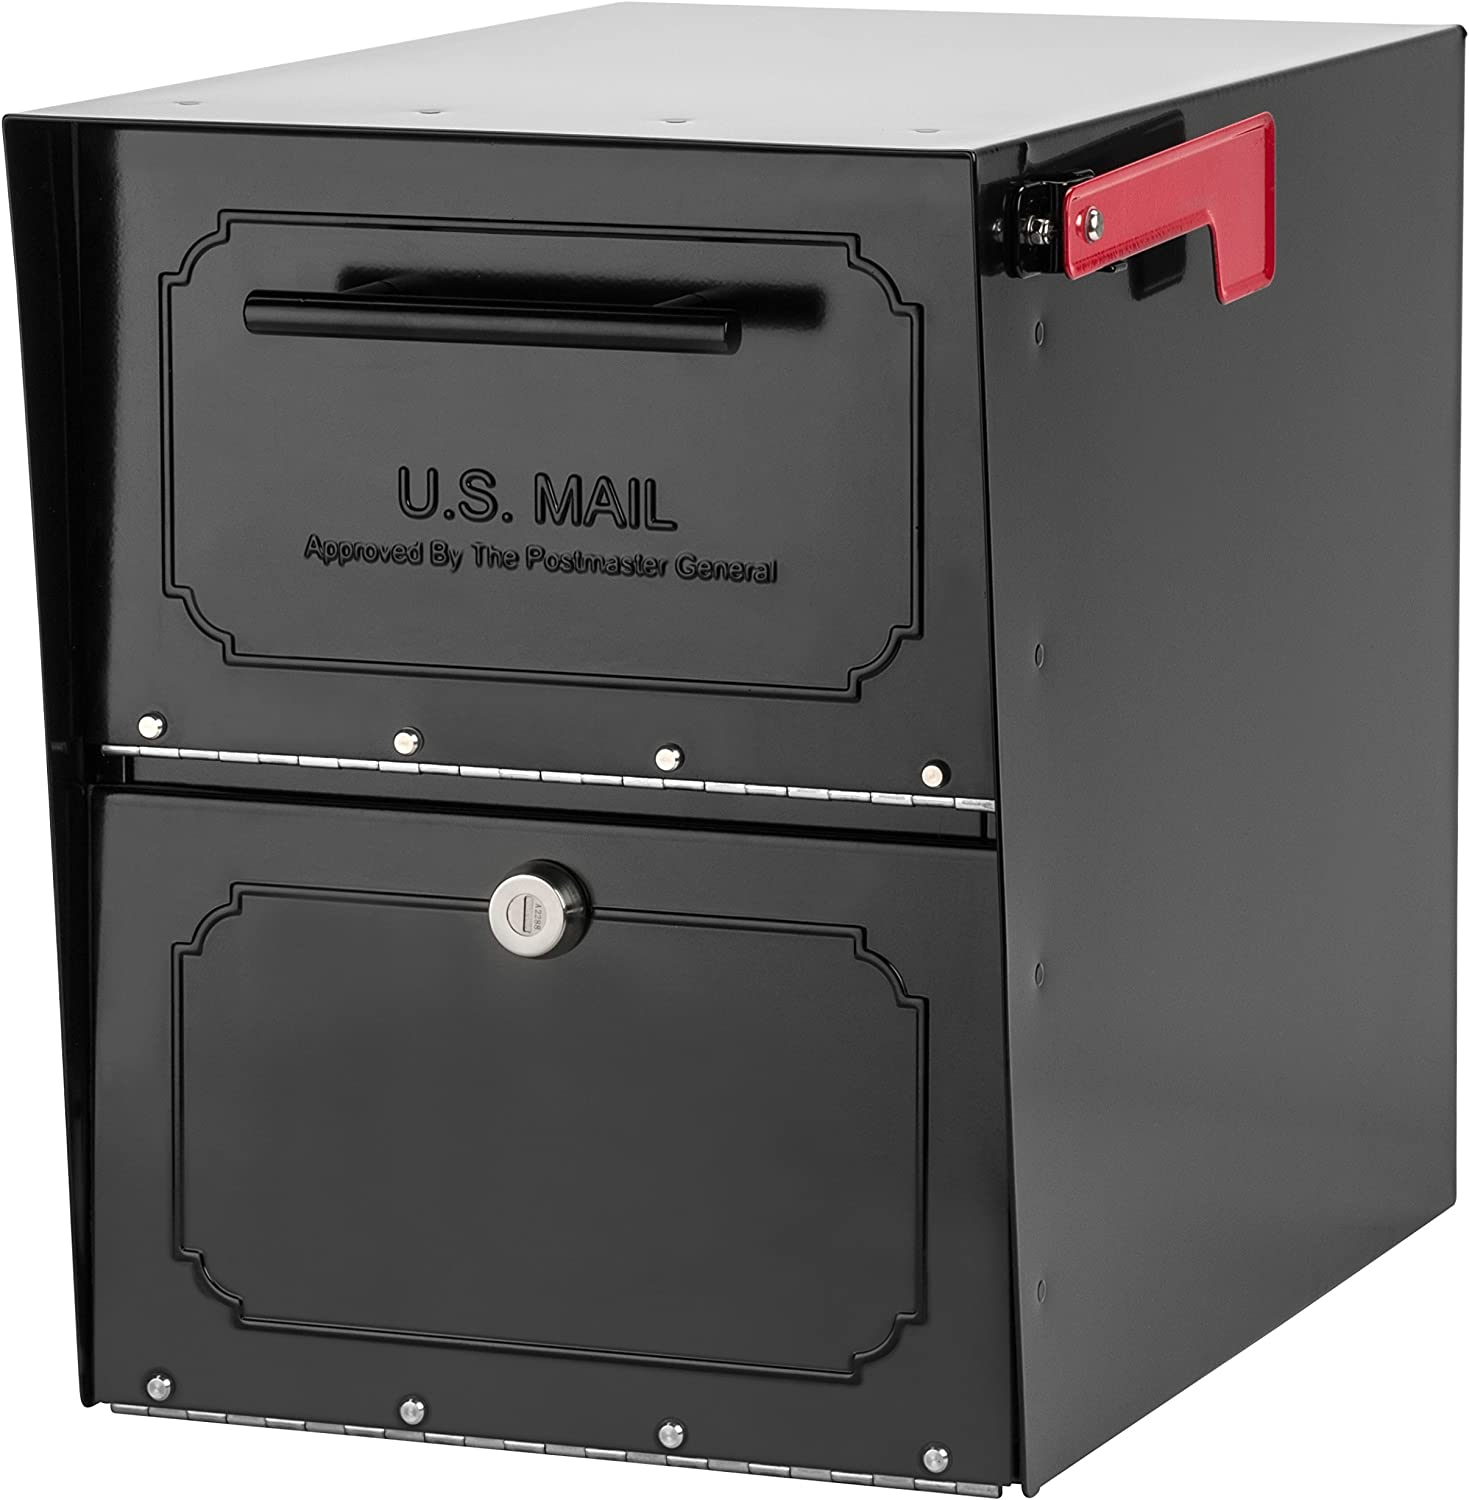 B0002Q91K2 Architectural Mailboxes 6200B-10 Oasis Classic Locking Post Mount Parcel Mailbox with High Security Reinforced Lock 91O2oy2BaFOL